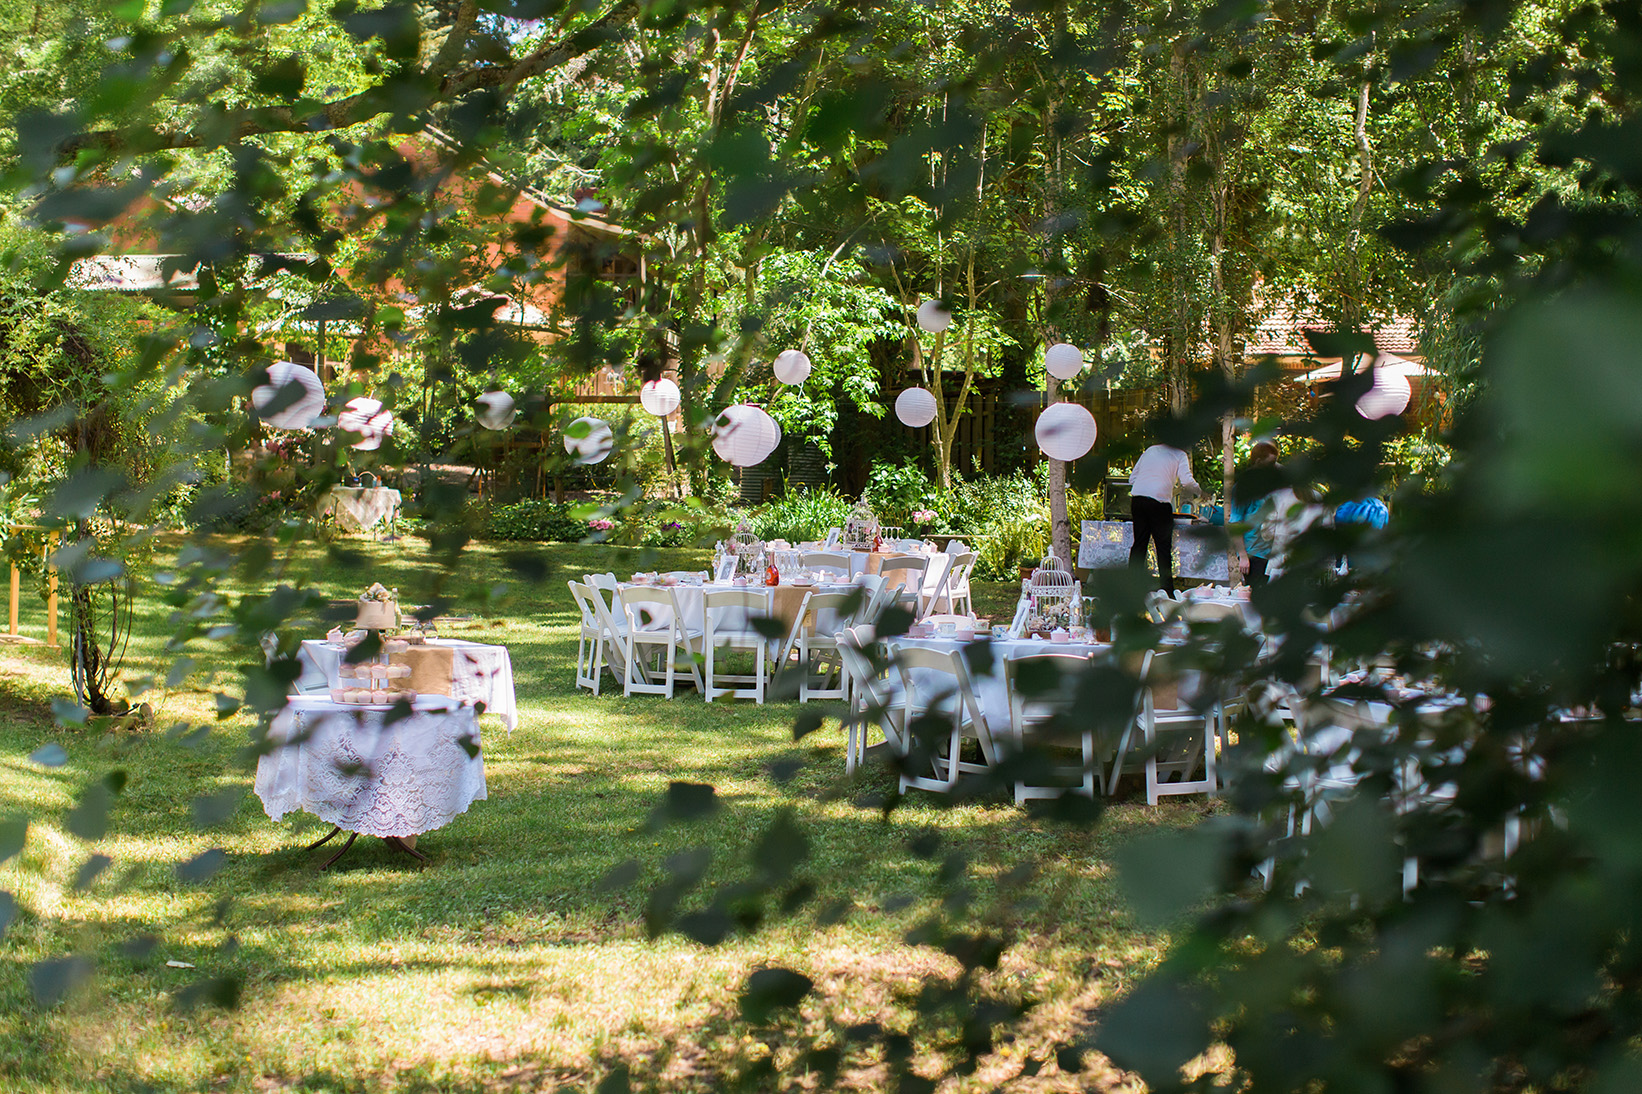 Darling Backyard Wedding Stirling 21.jpg